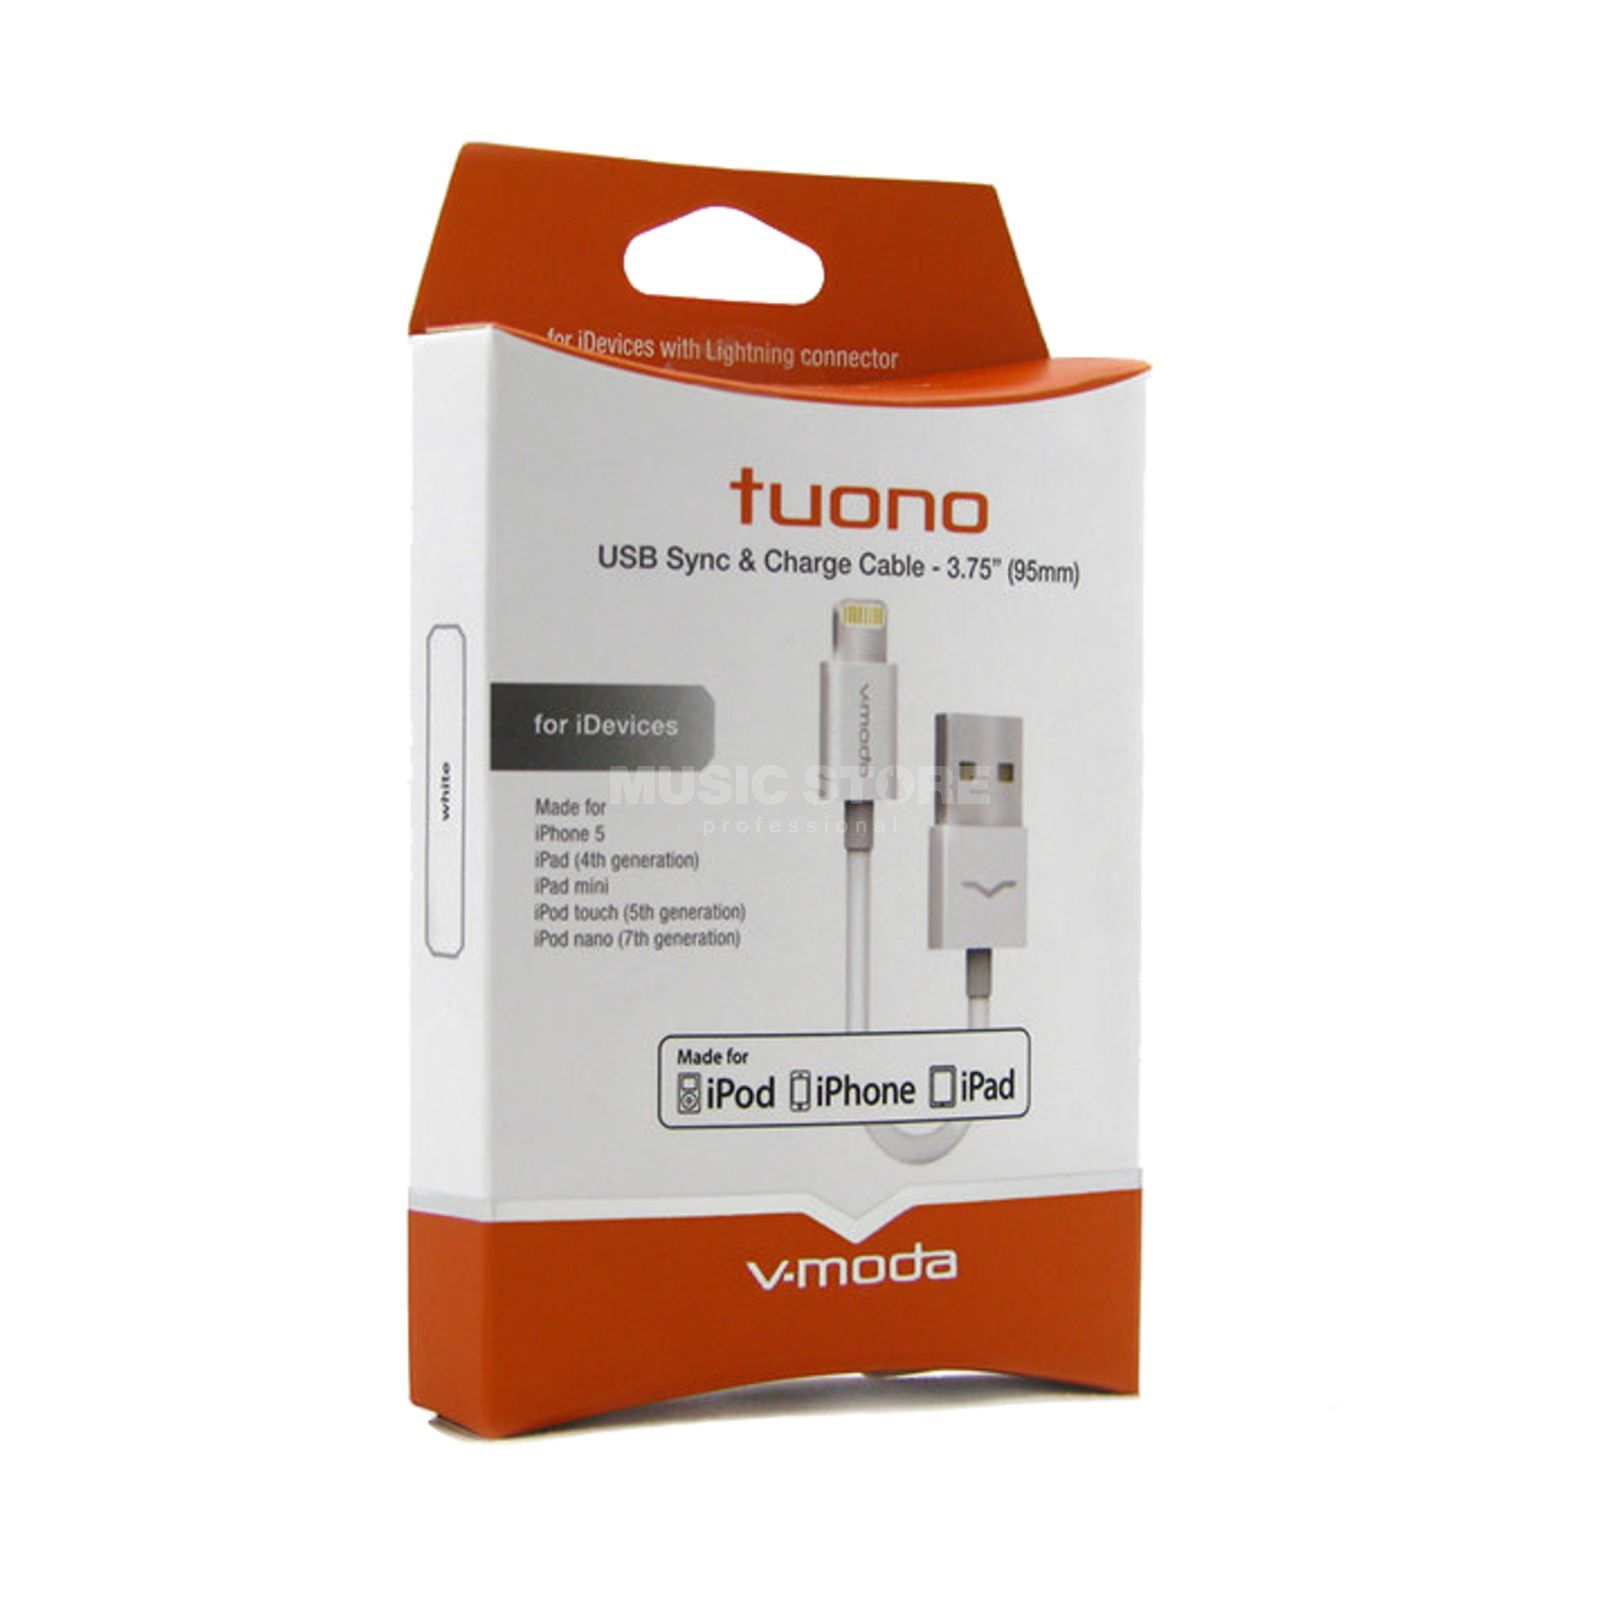 V-Moda Tuono Lightning Cable white Kabel für iDevices Image du produit